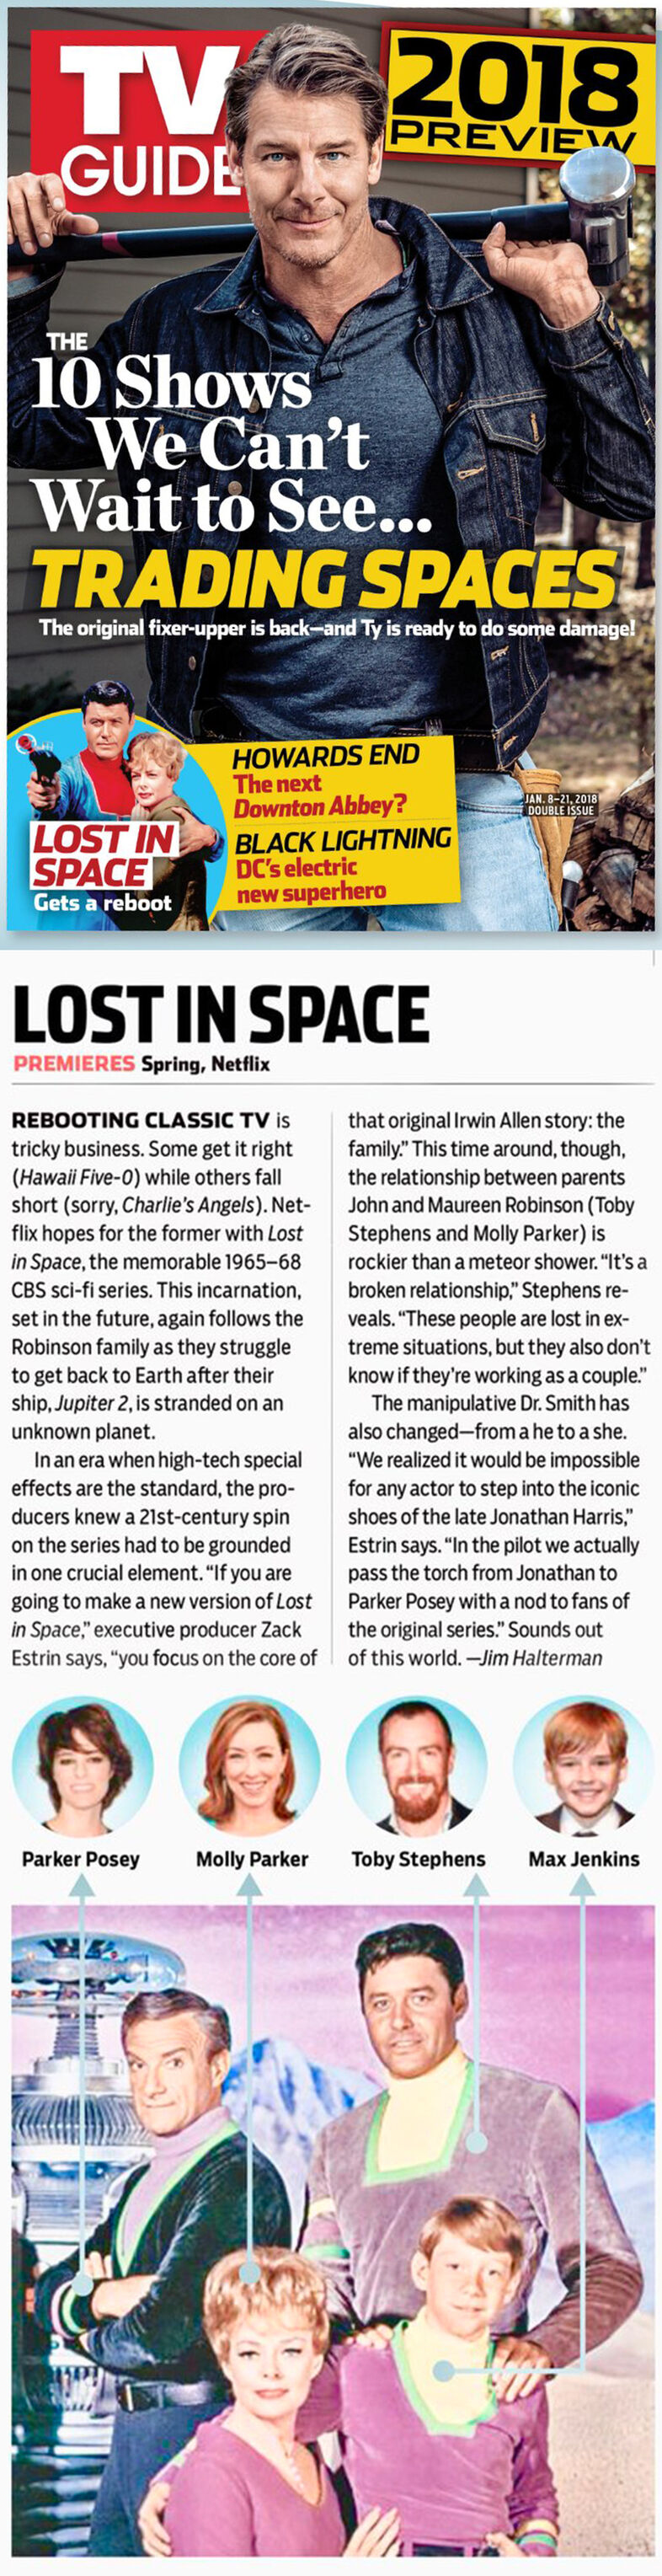 2017-12-30 - TV Guide - Jan 8-21 2018 - Lost in Space gets a reboot